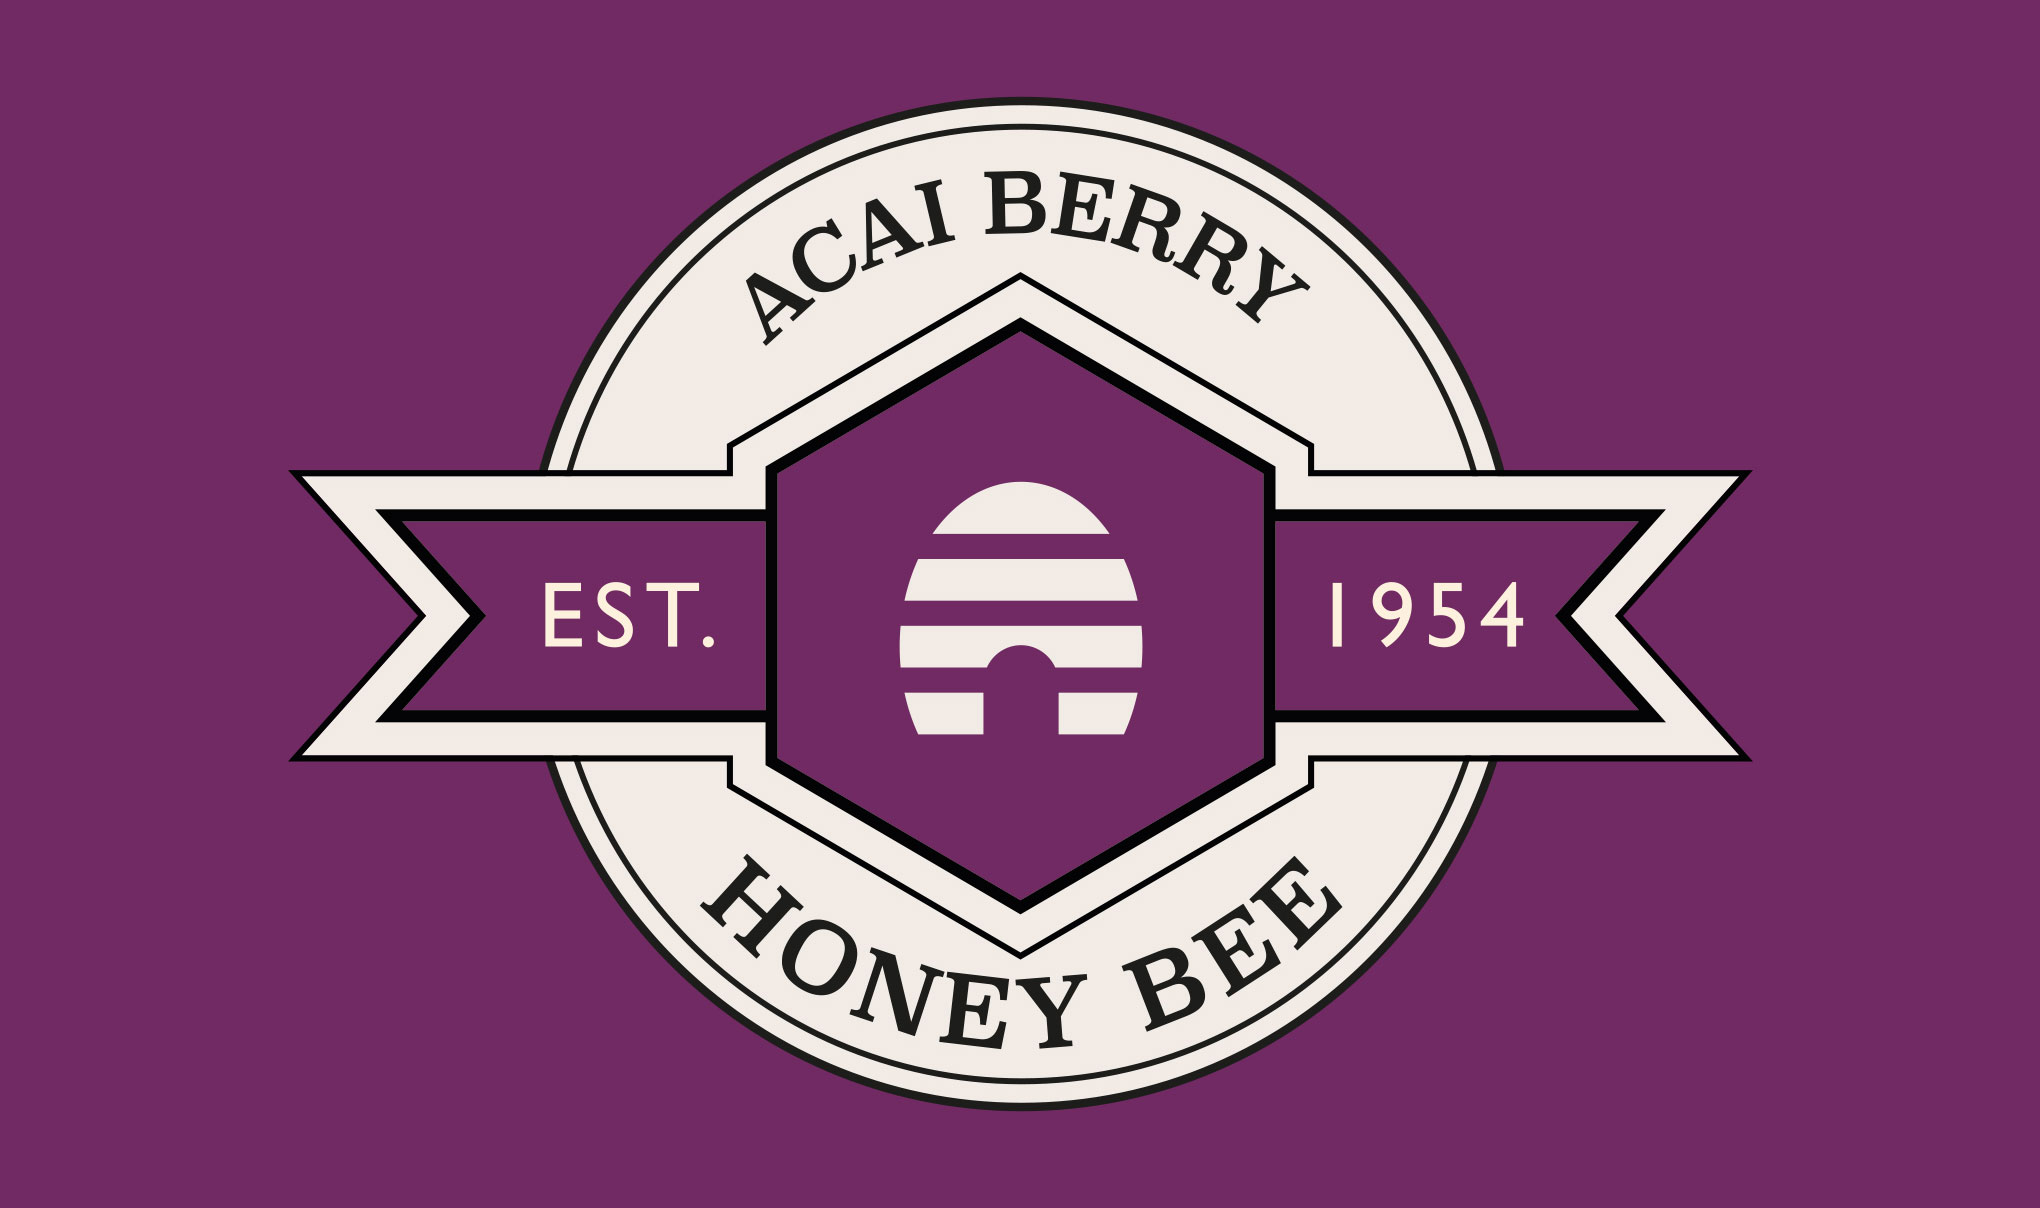 Brand logo for 'Honey Bee' on acai berry background colour. Designed for Amber House by packaging design agency - Flipflop Design Ltd.